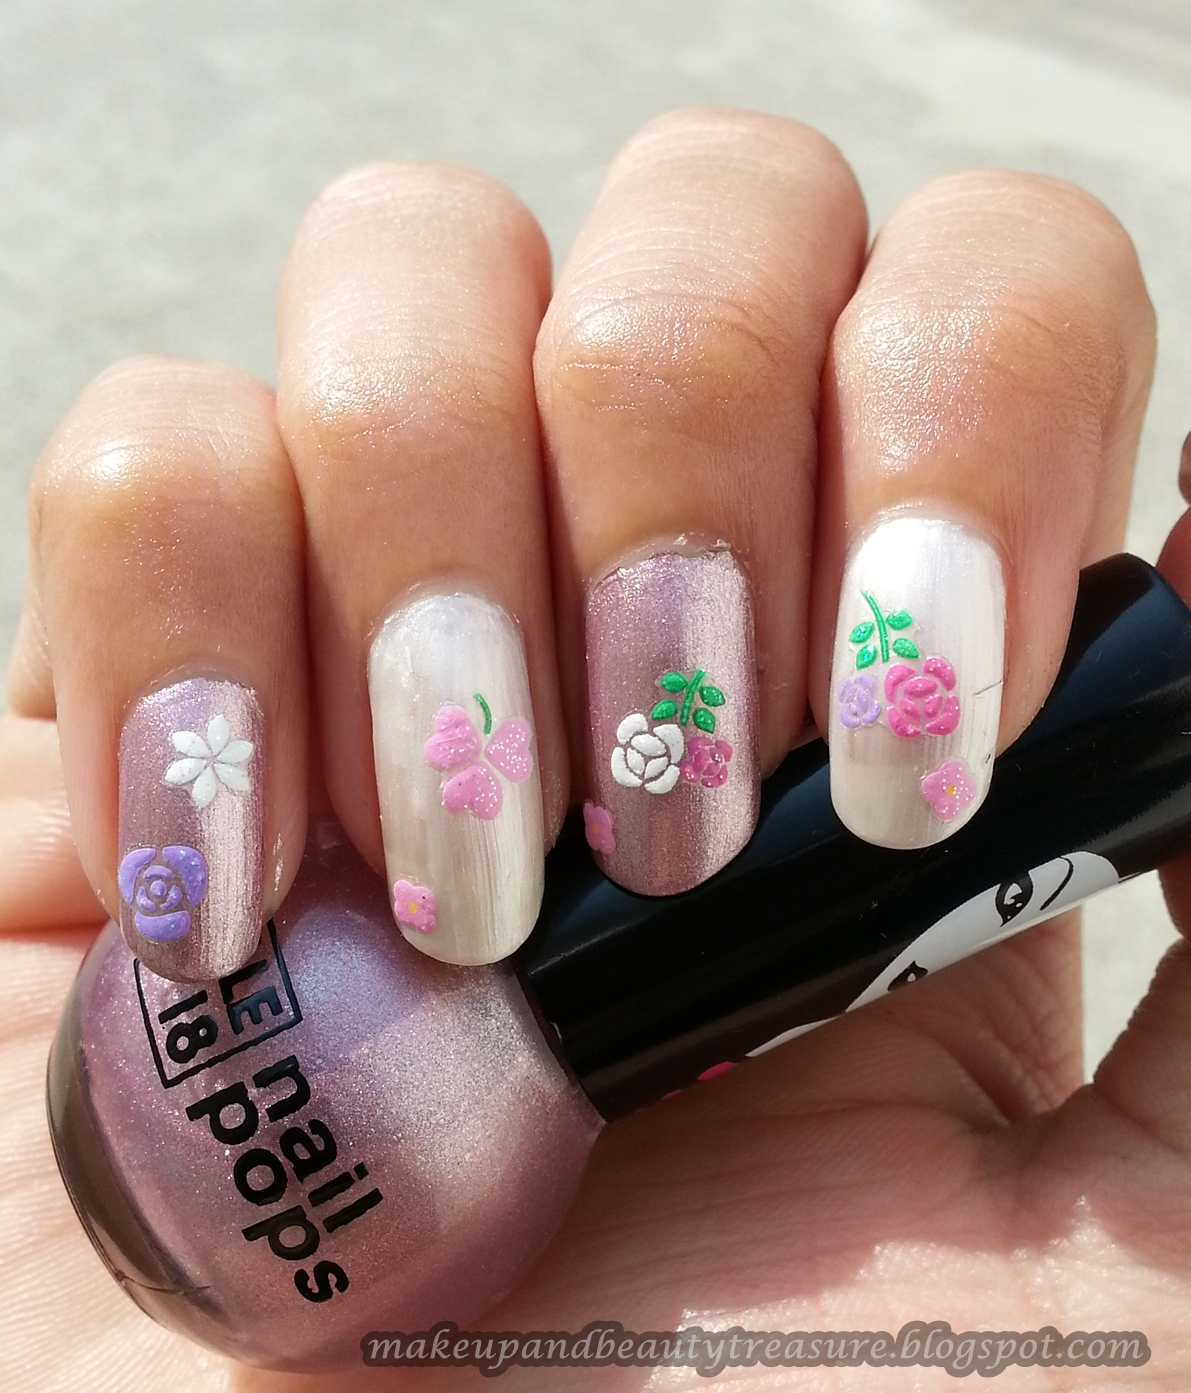 Makeup and Beauty Treasure: Joby 3D Nail Art Stickers \'Flowers #NA03 ...